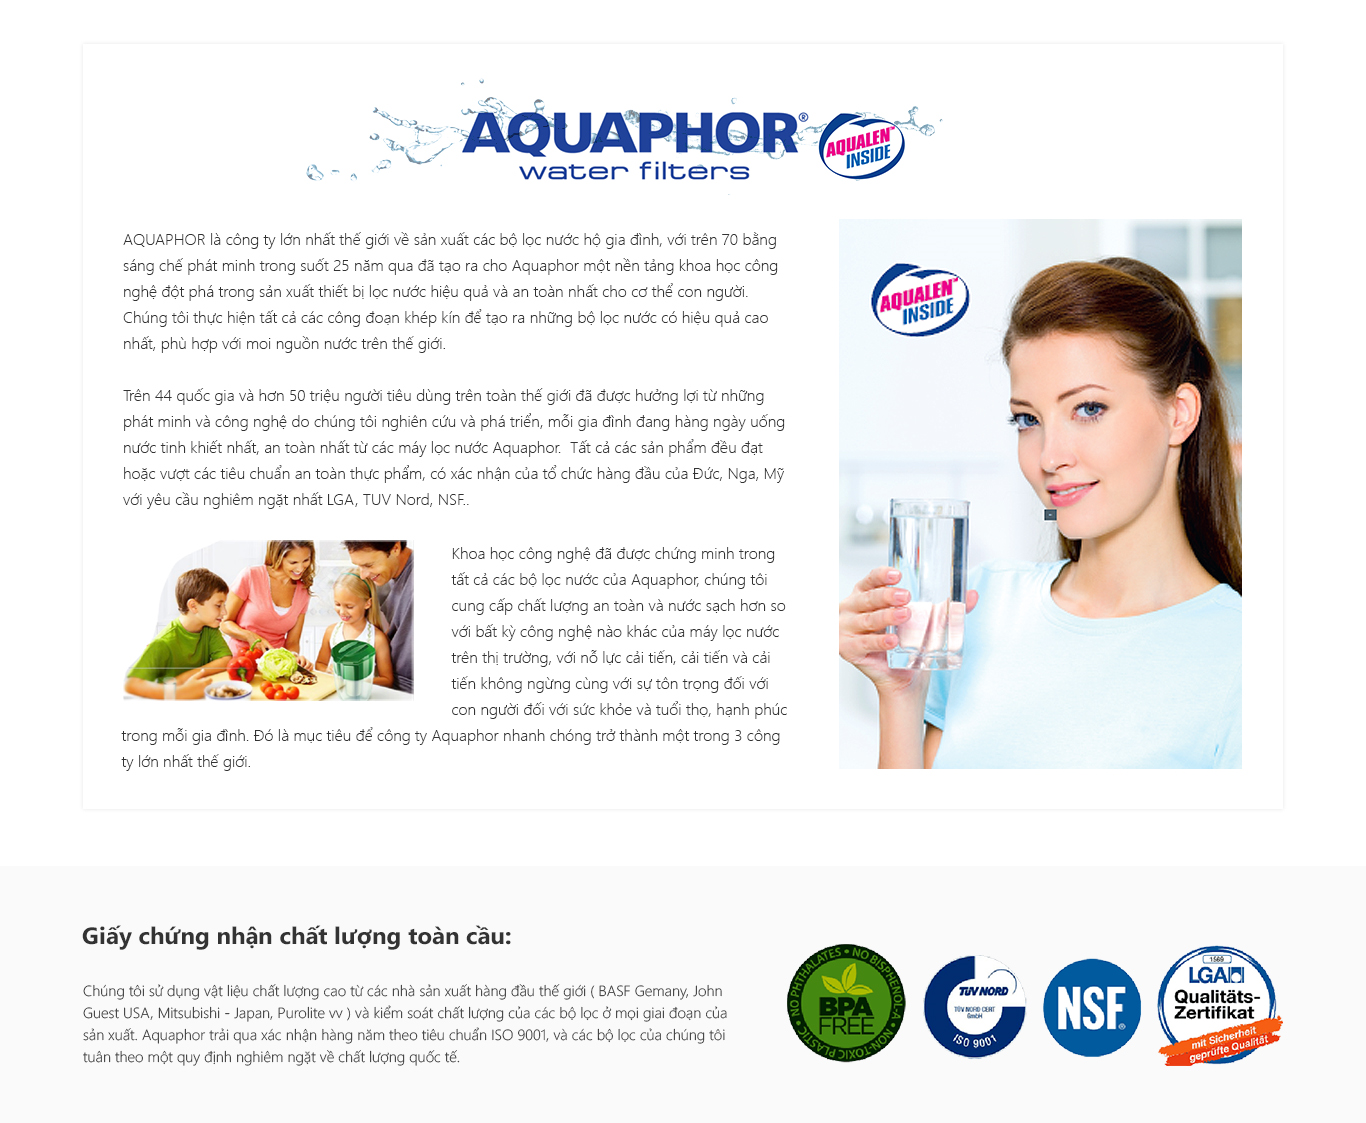 Aquaphor Favorite